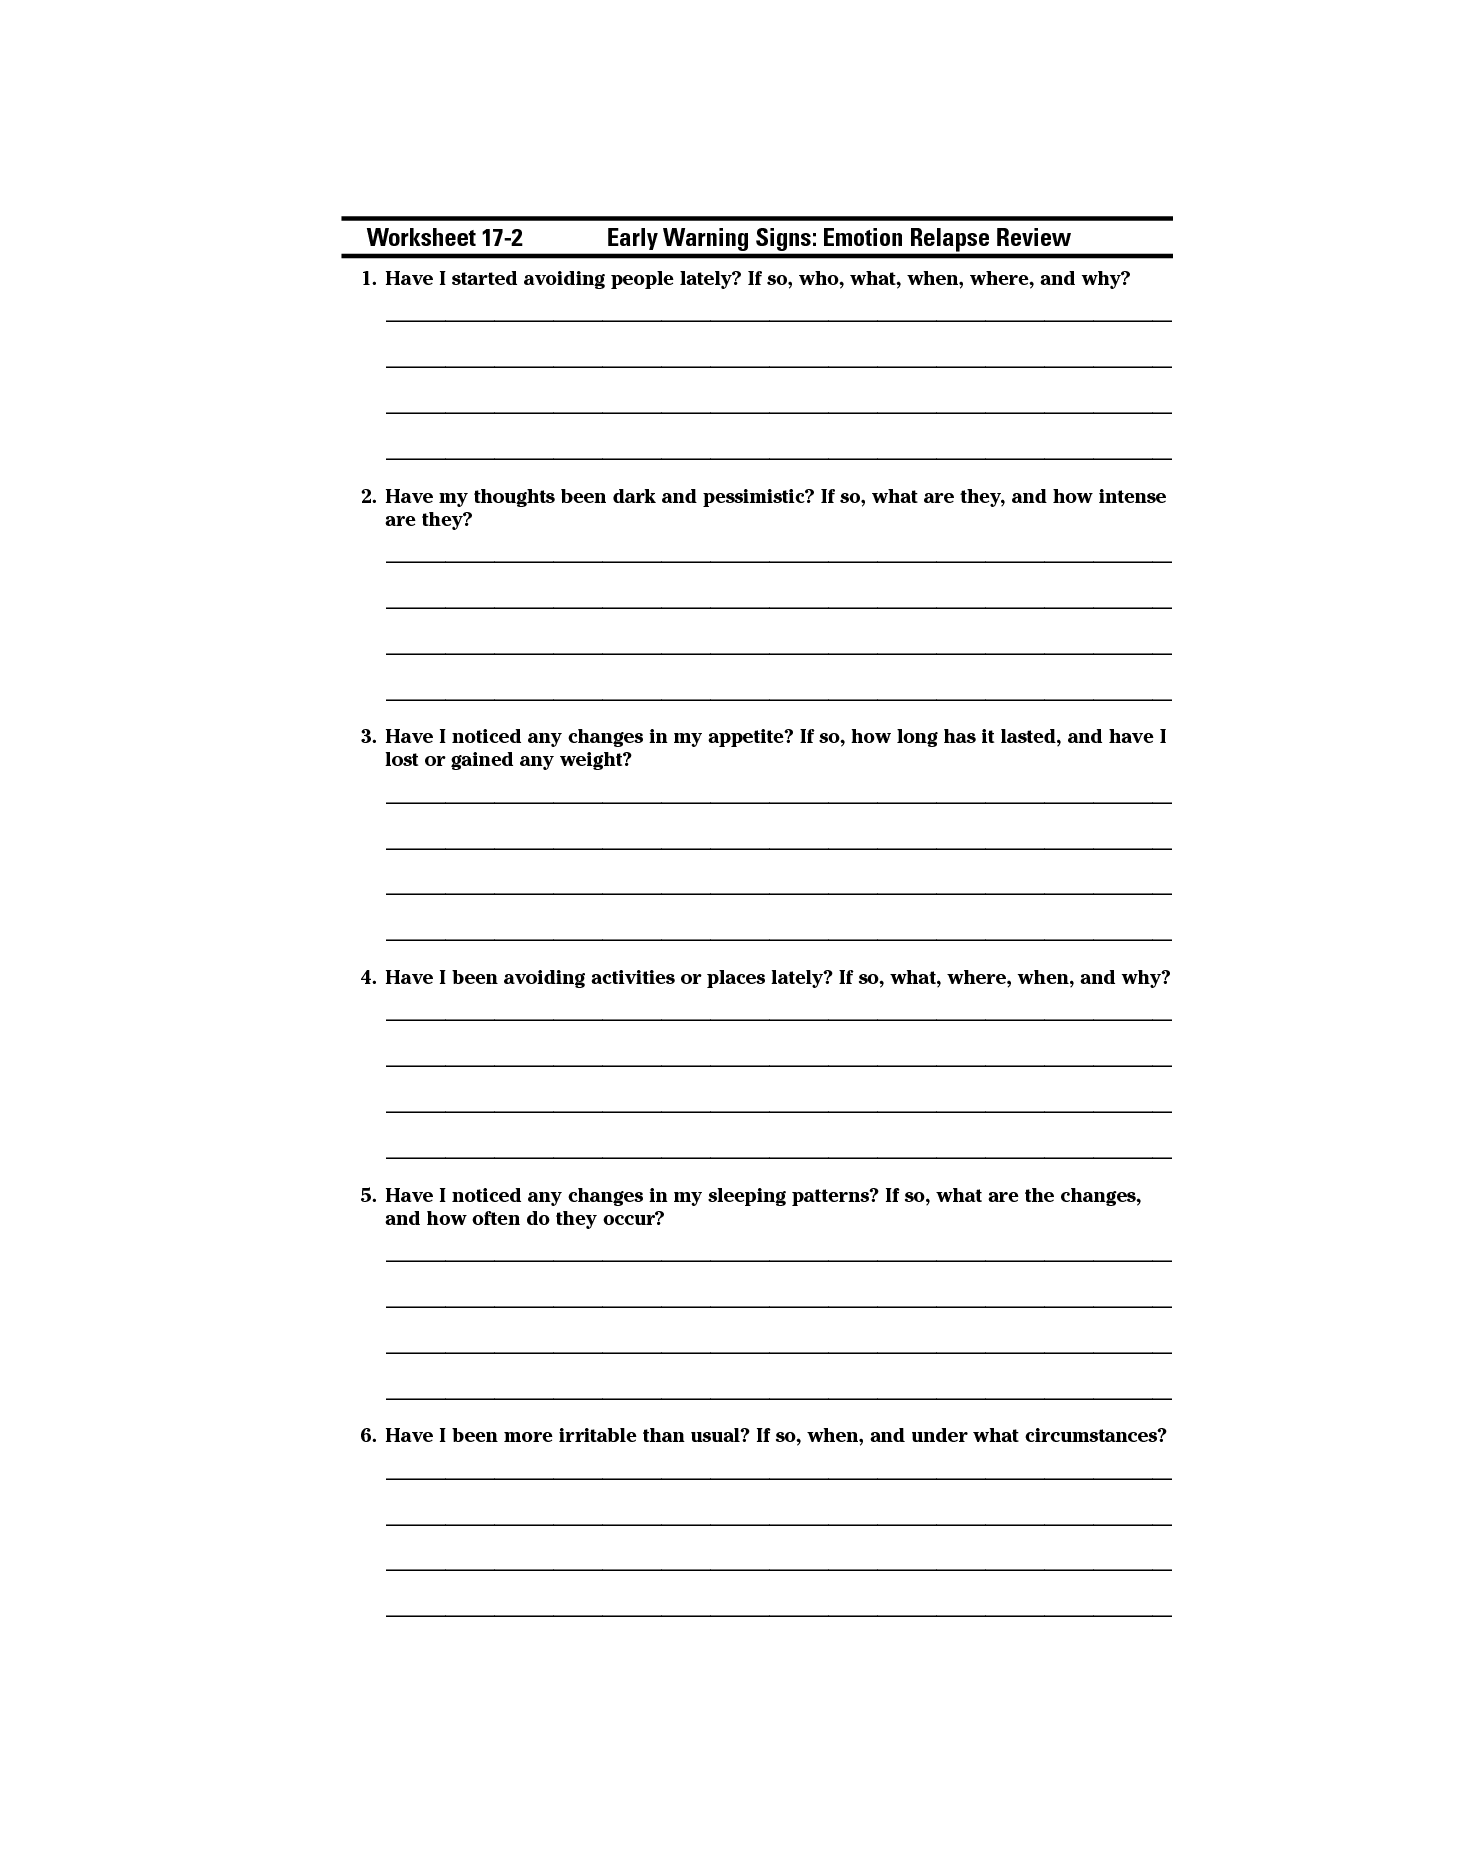 Relapse Warning Signs Worksheet